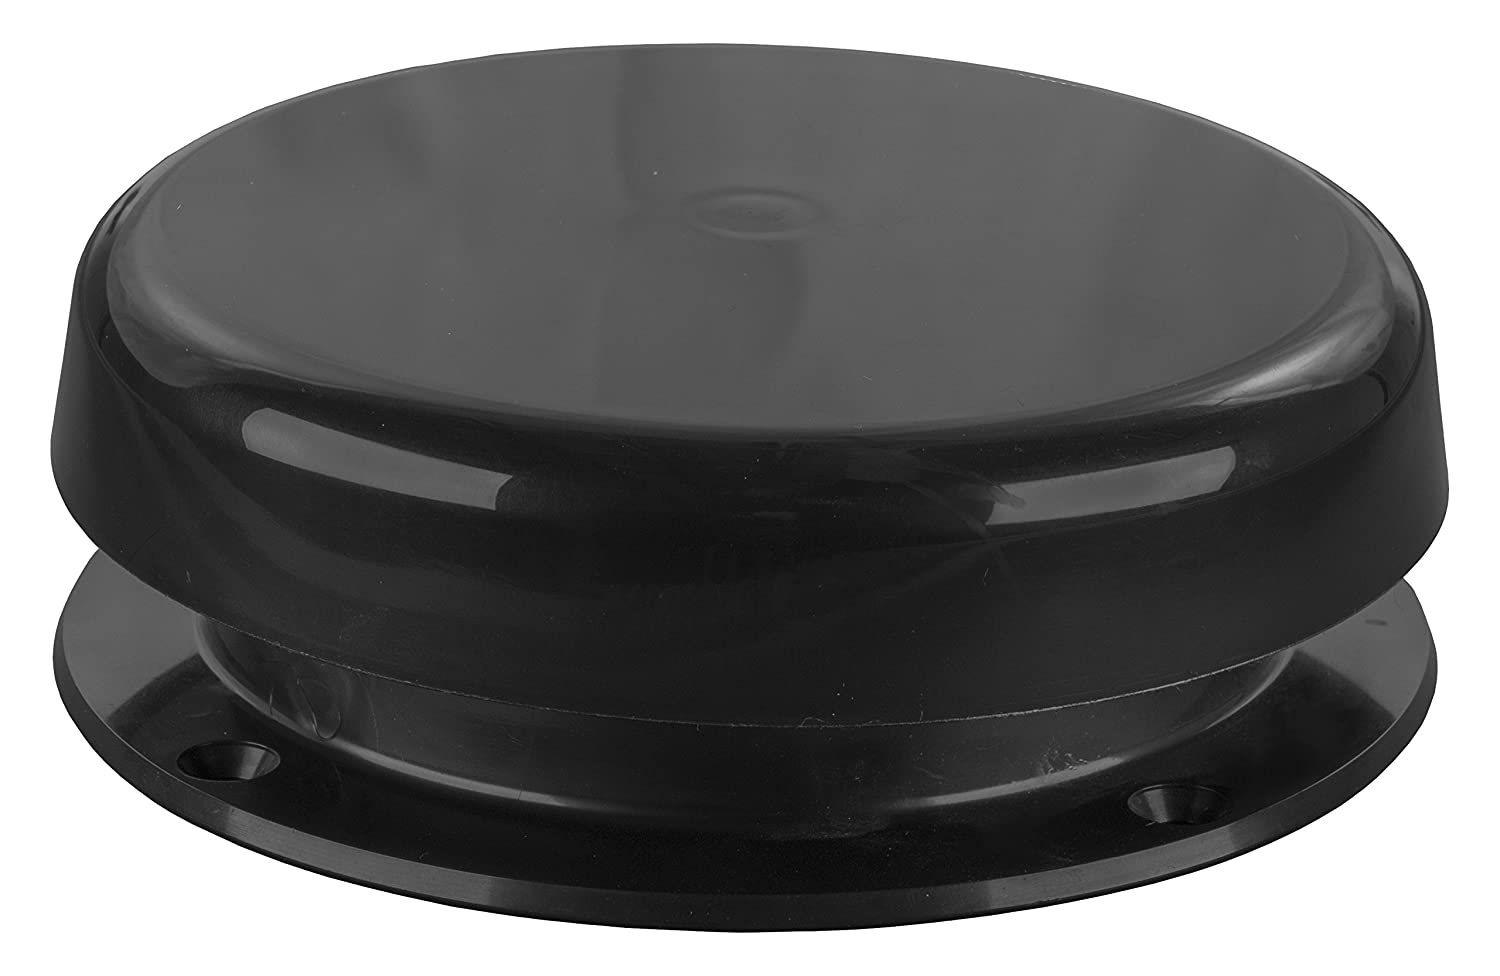 JR Products 02-29115 Mushroom Style Plumbing Vent Black